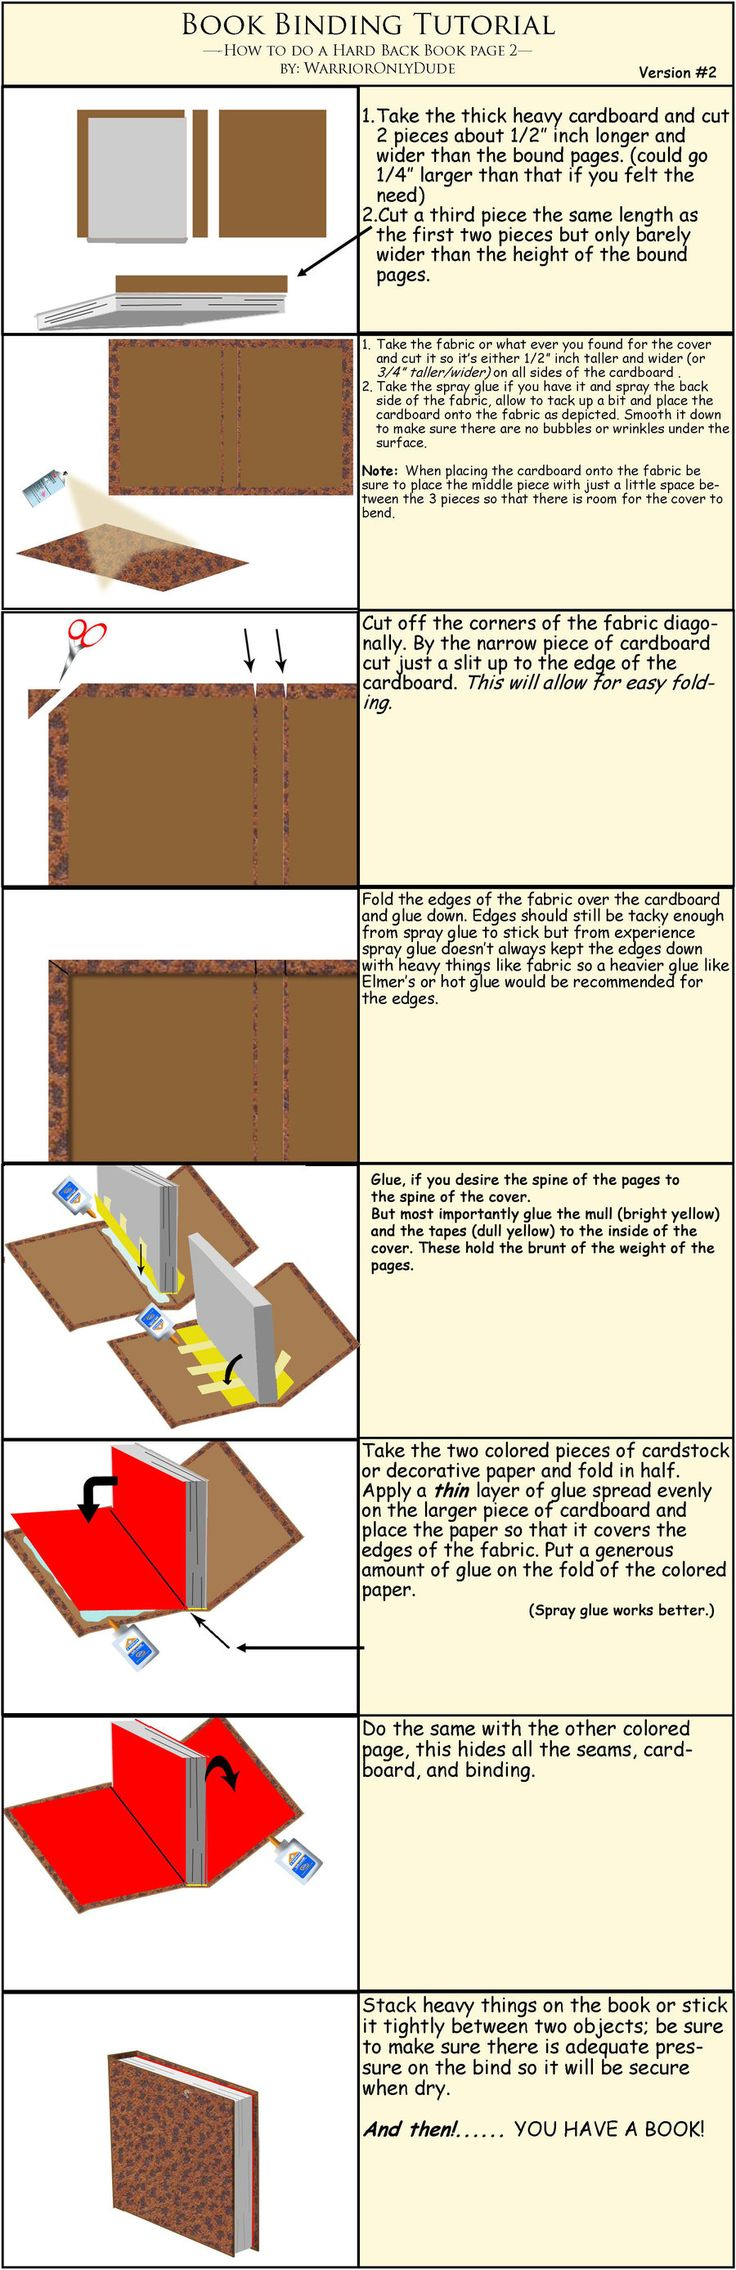 Book Tutorial pg 2 by warrioronlydude.deviantart.com on @deviantART